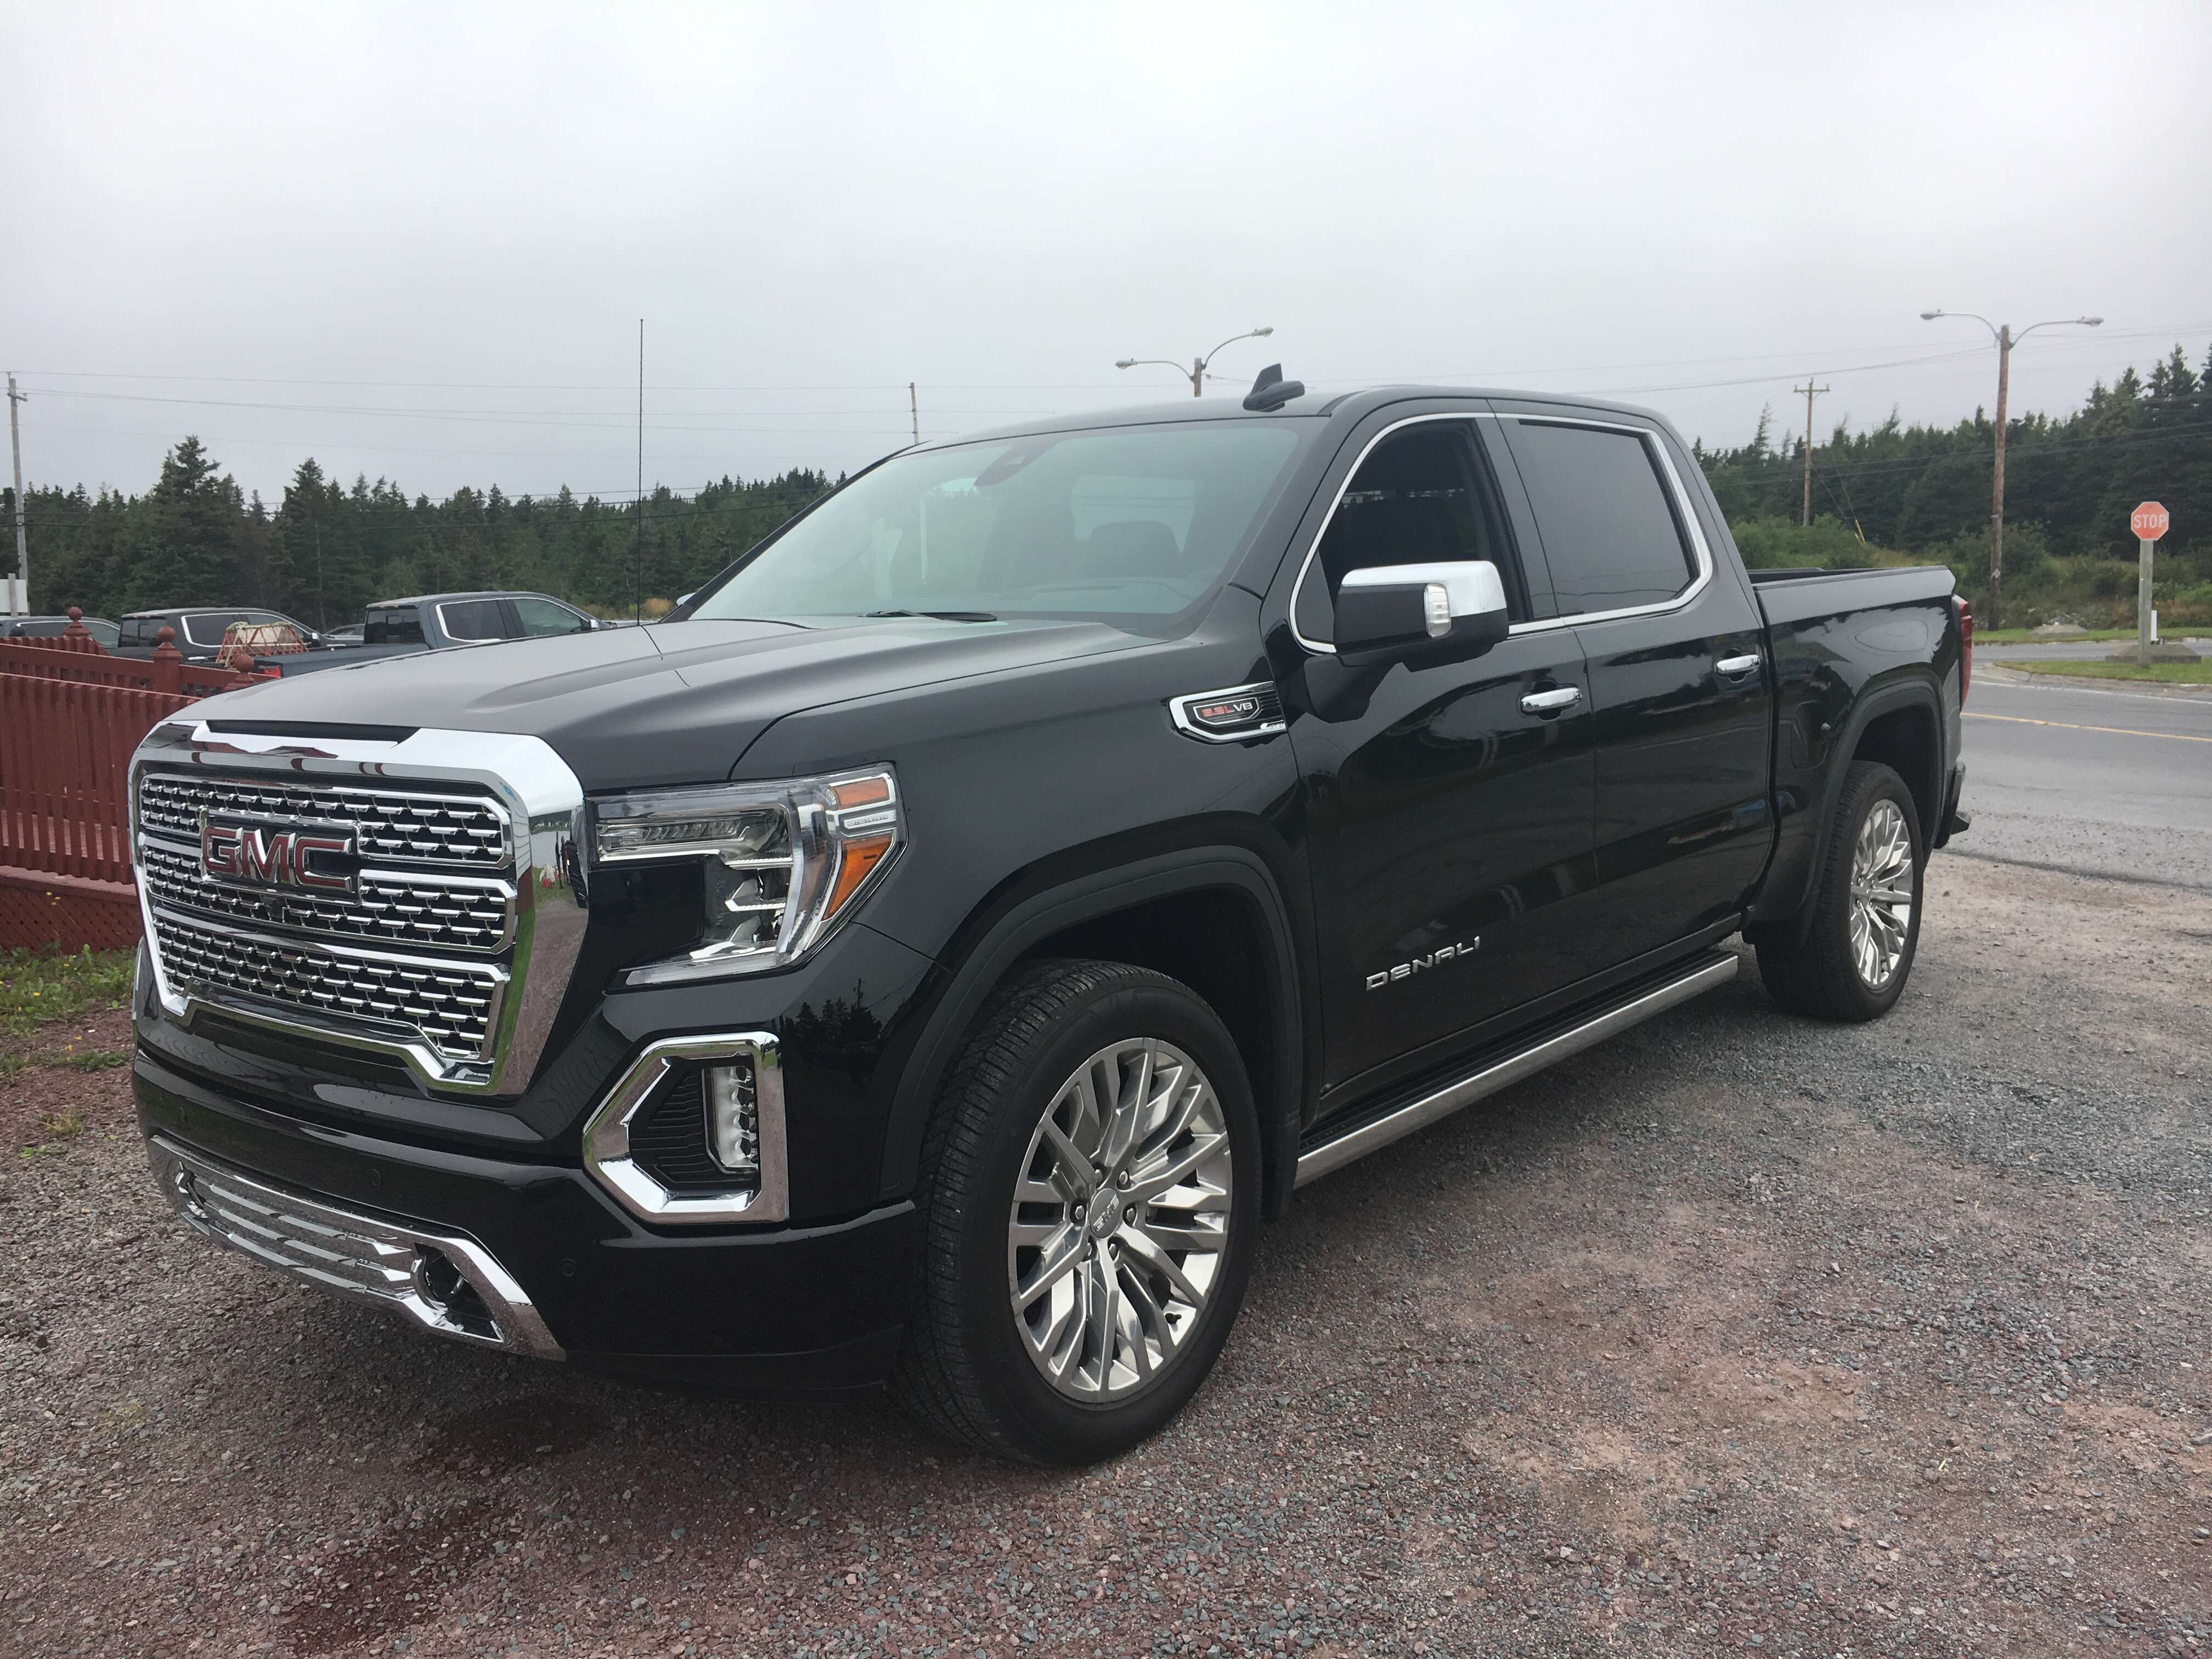 2019 GMC Sierra First Drive Review: GM's New Truck In